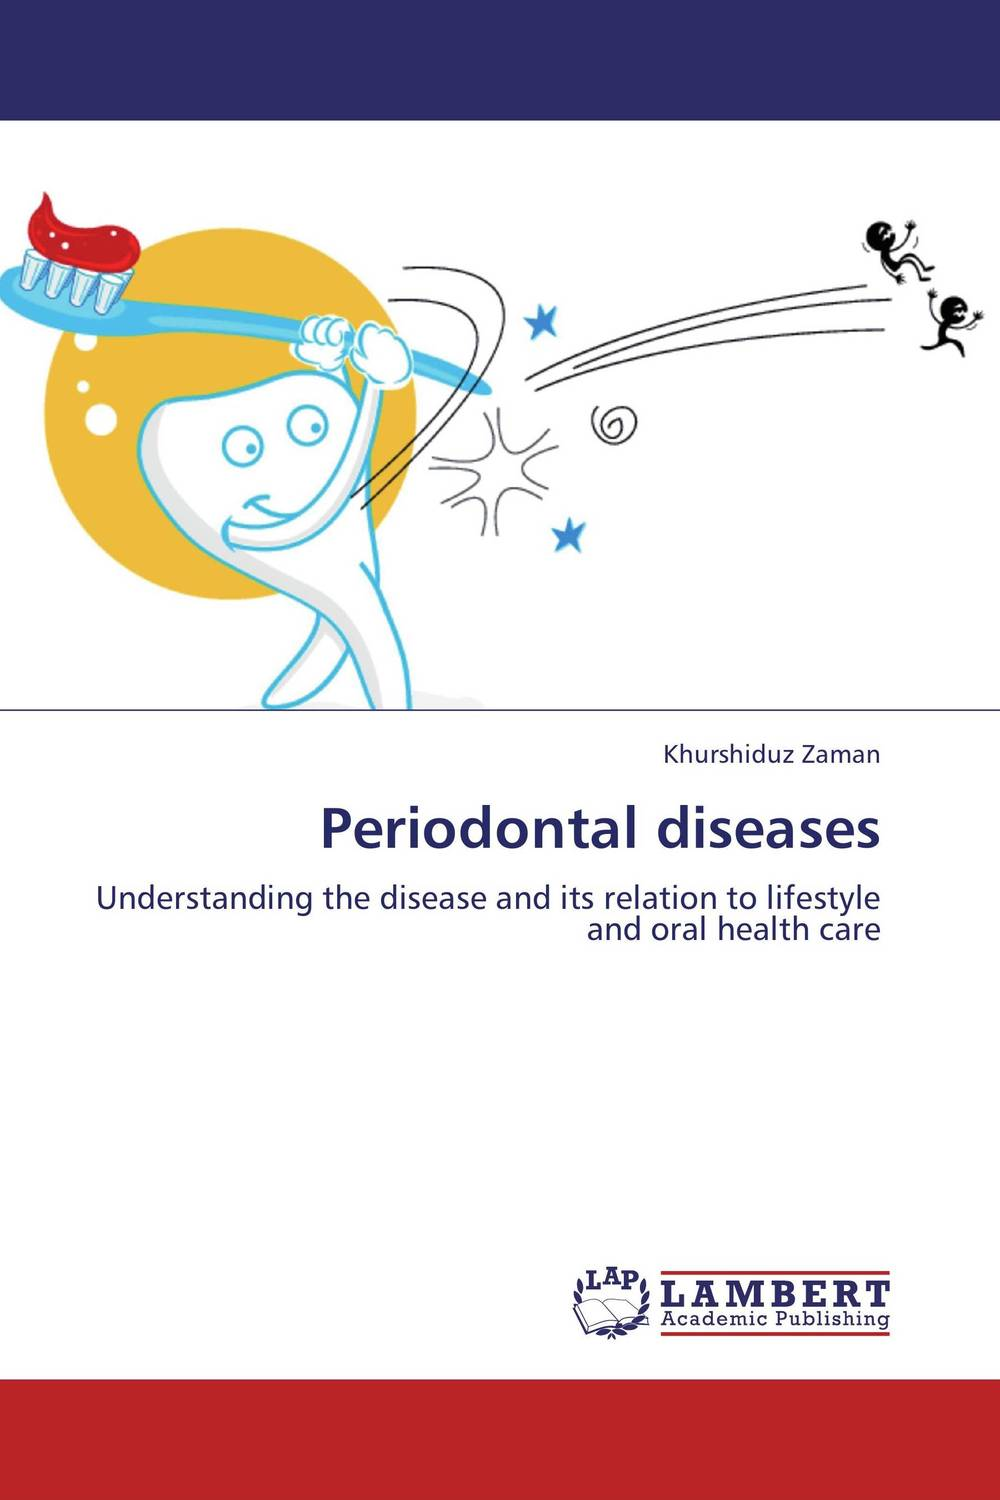 Periodontal diseases manjari singh introducing and reviewing preterm delivery and low birth weight